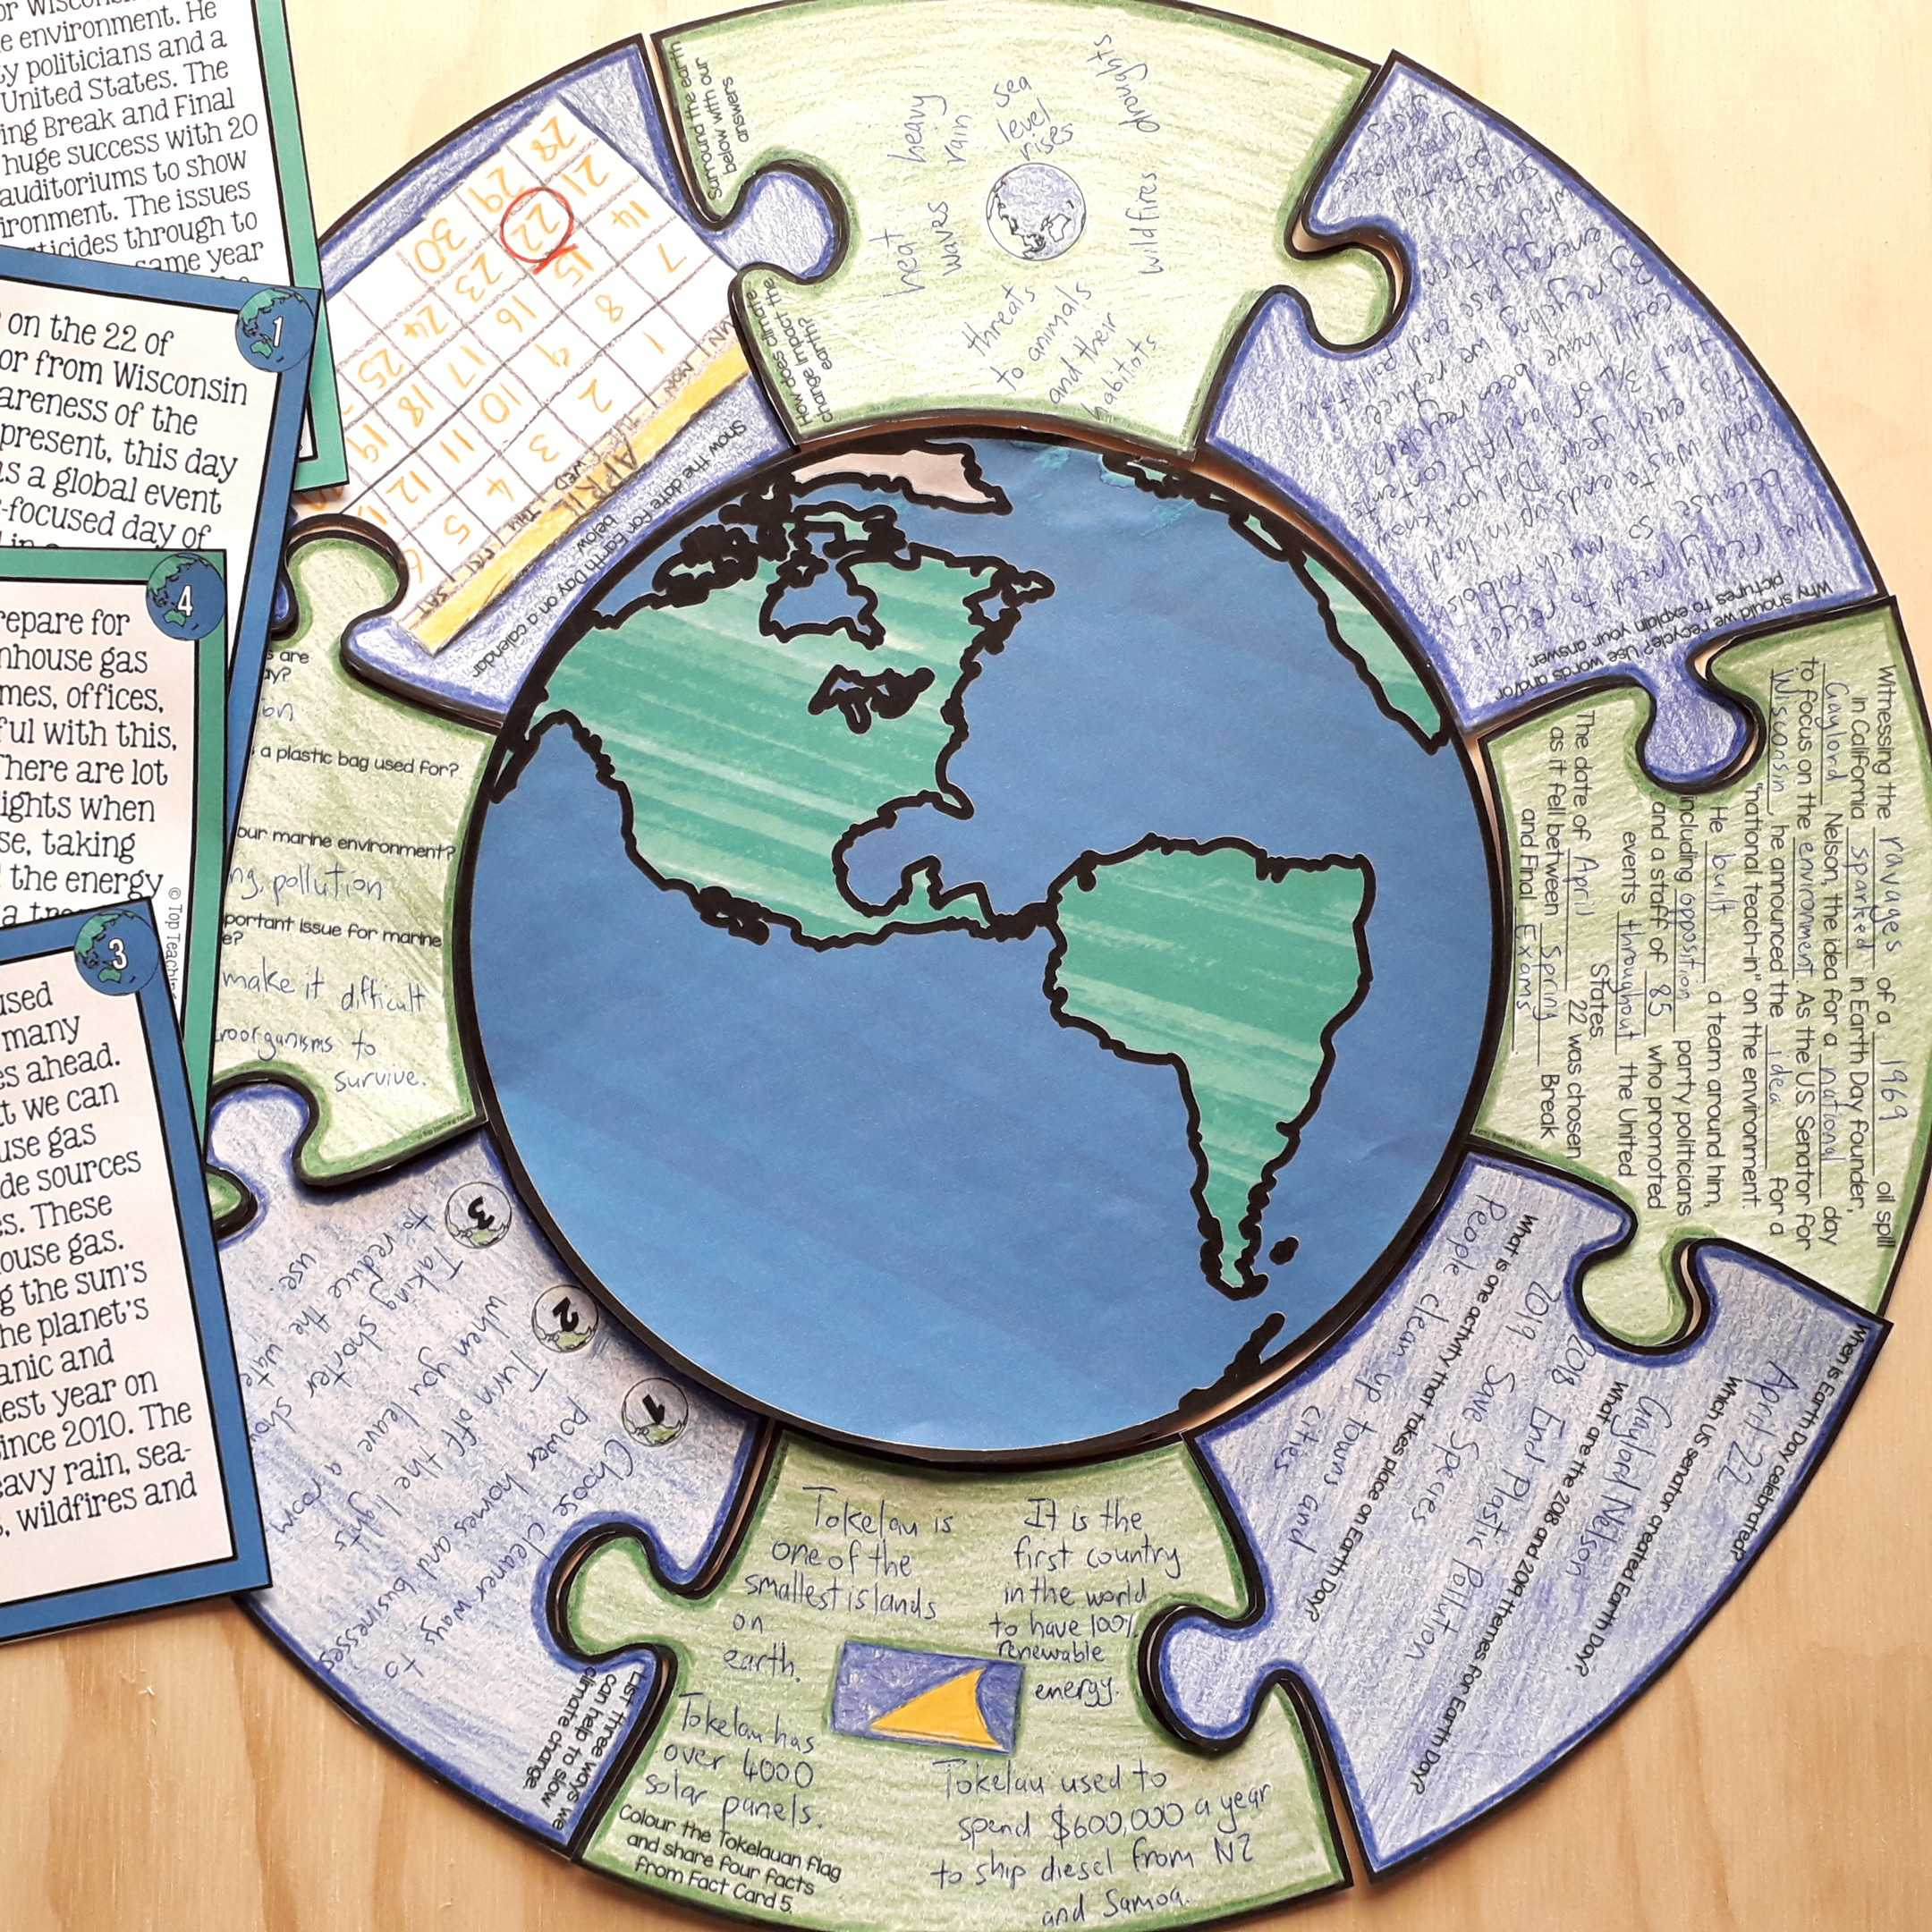 Recycling And Conservation Reading Comprehension Puzzle Activity